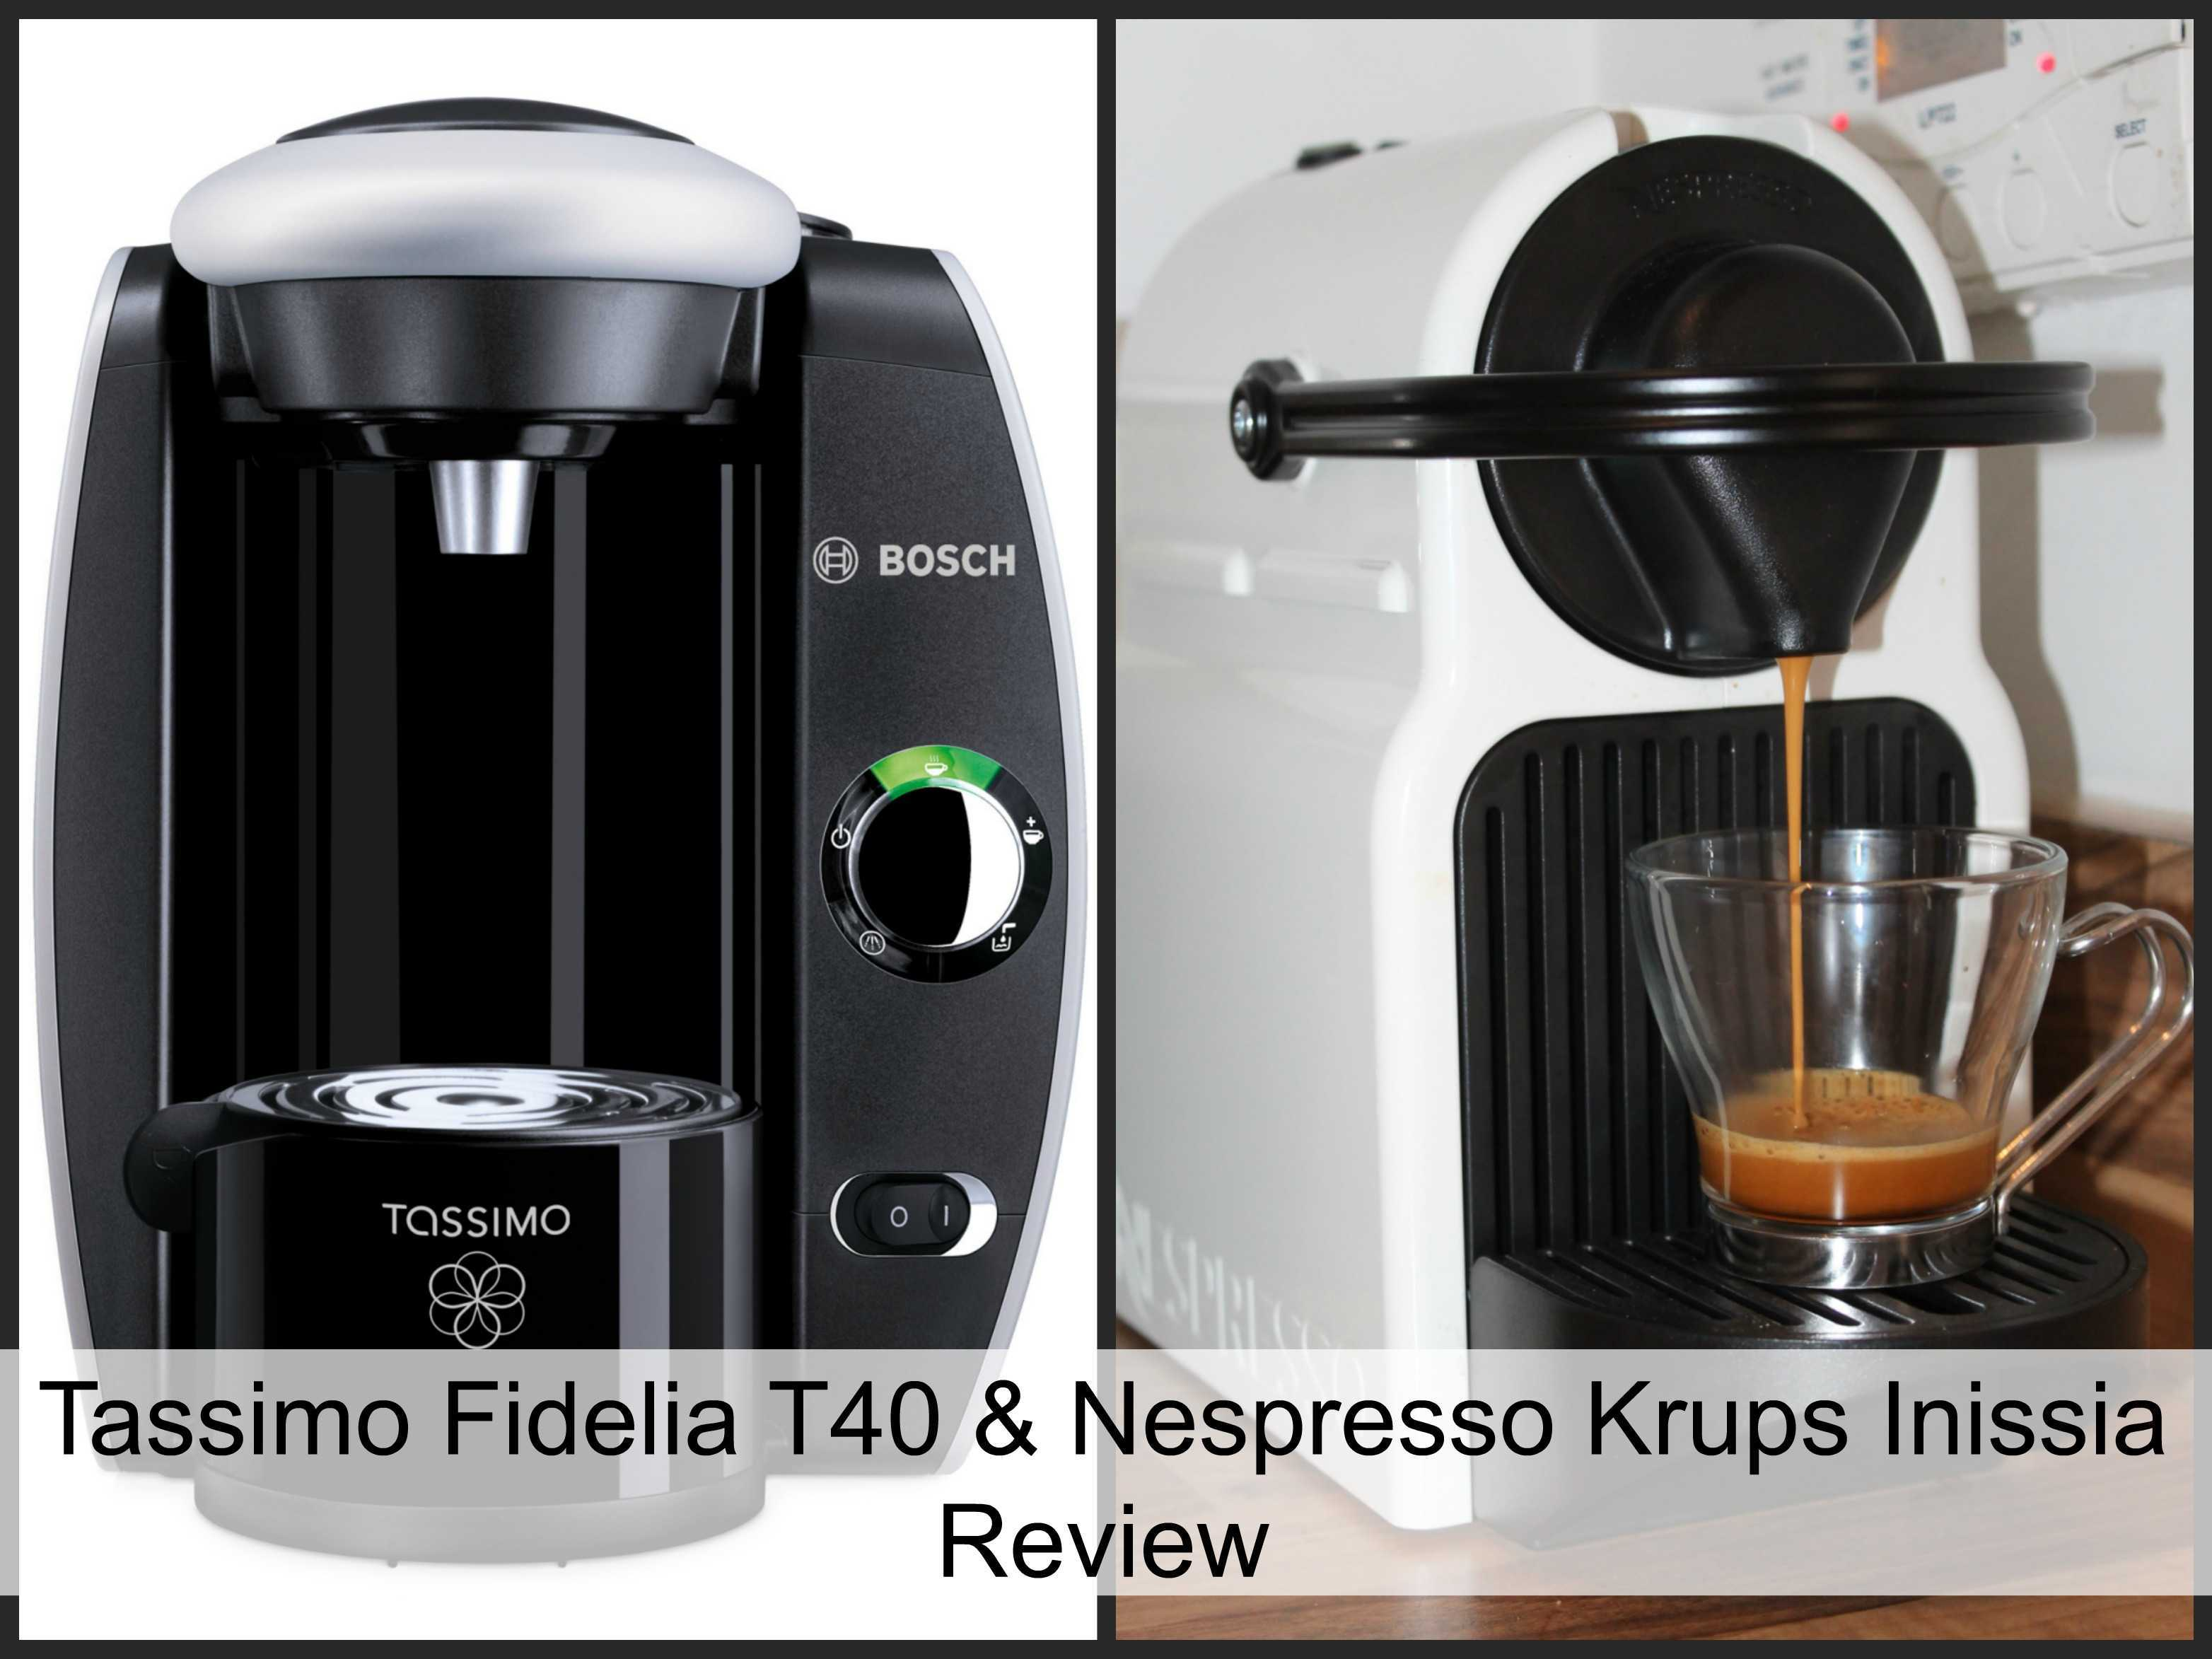 Tassimo Fidelia T40 & Nespresso Krups Inissia Coffee Machine Review